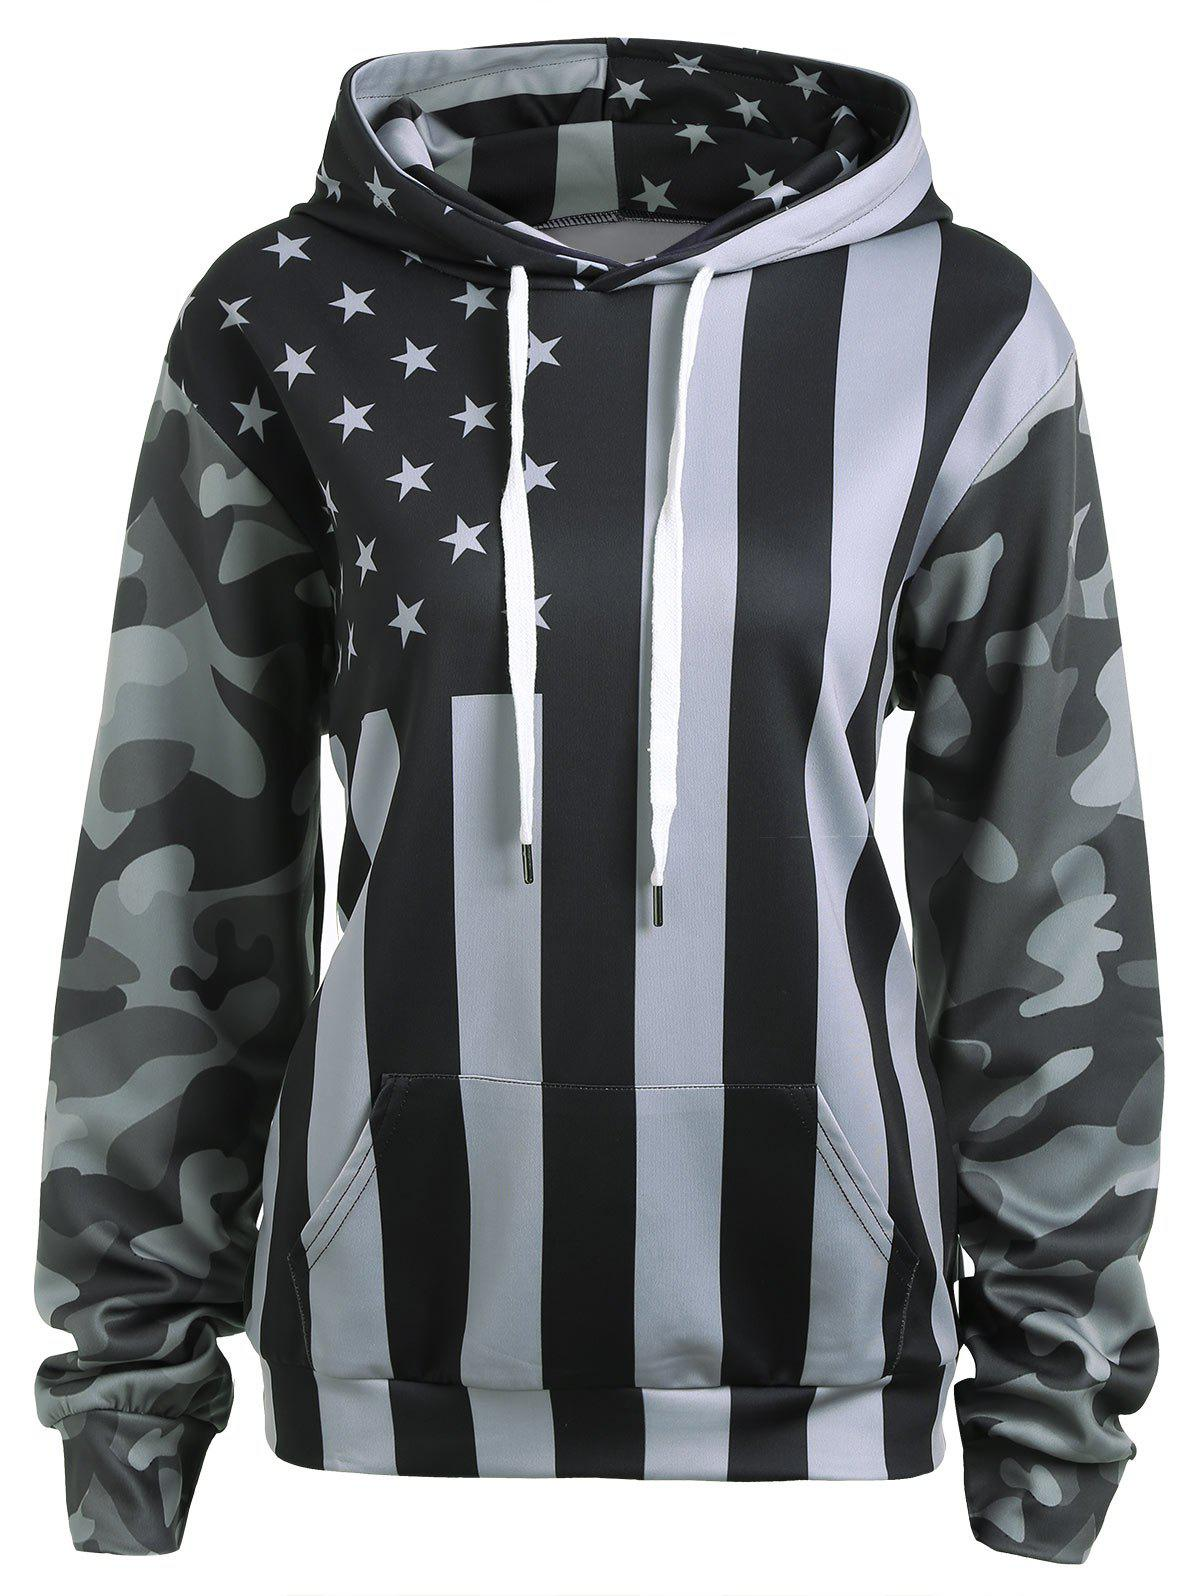 Drawstring Patriotic American Flag Camo HoodieWOMEN<br><br>Size: L; Color: BLACK AND GREY; Material: Cotton,Polyester; Shirt Length: Regular; Sleeve Length: Full; Style: Casual; Pattern Style: American Flag; Season: Fall; Weight: 0.4500kg; Package Contents: 1 x Hoodie;